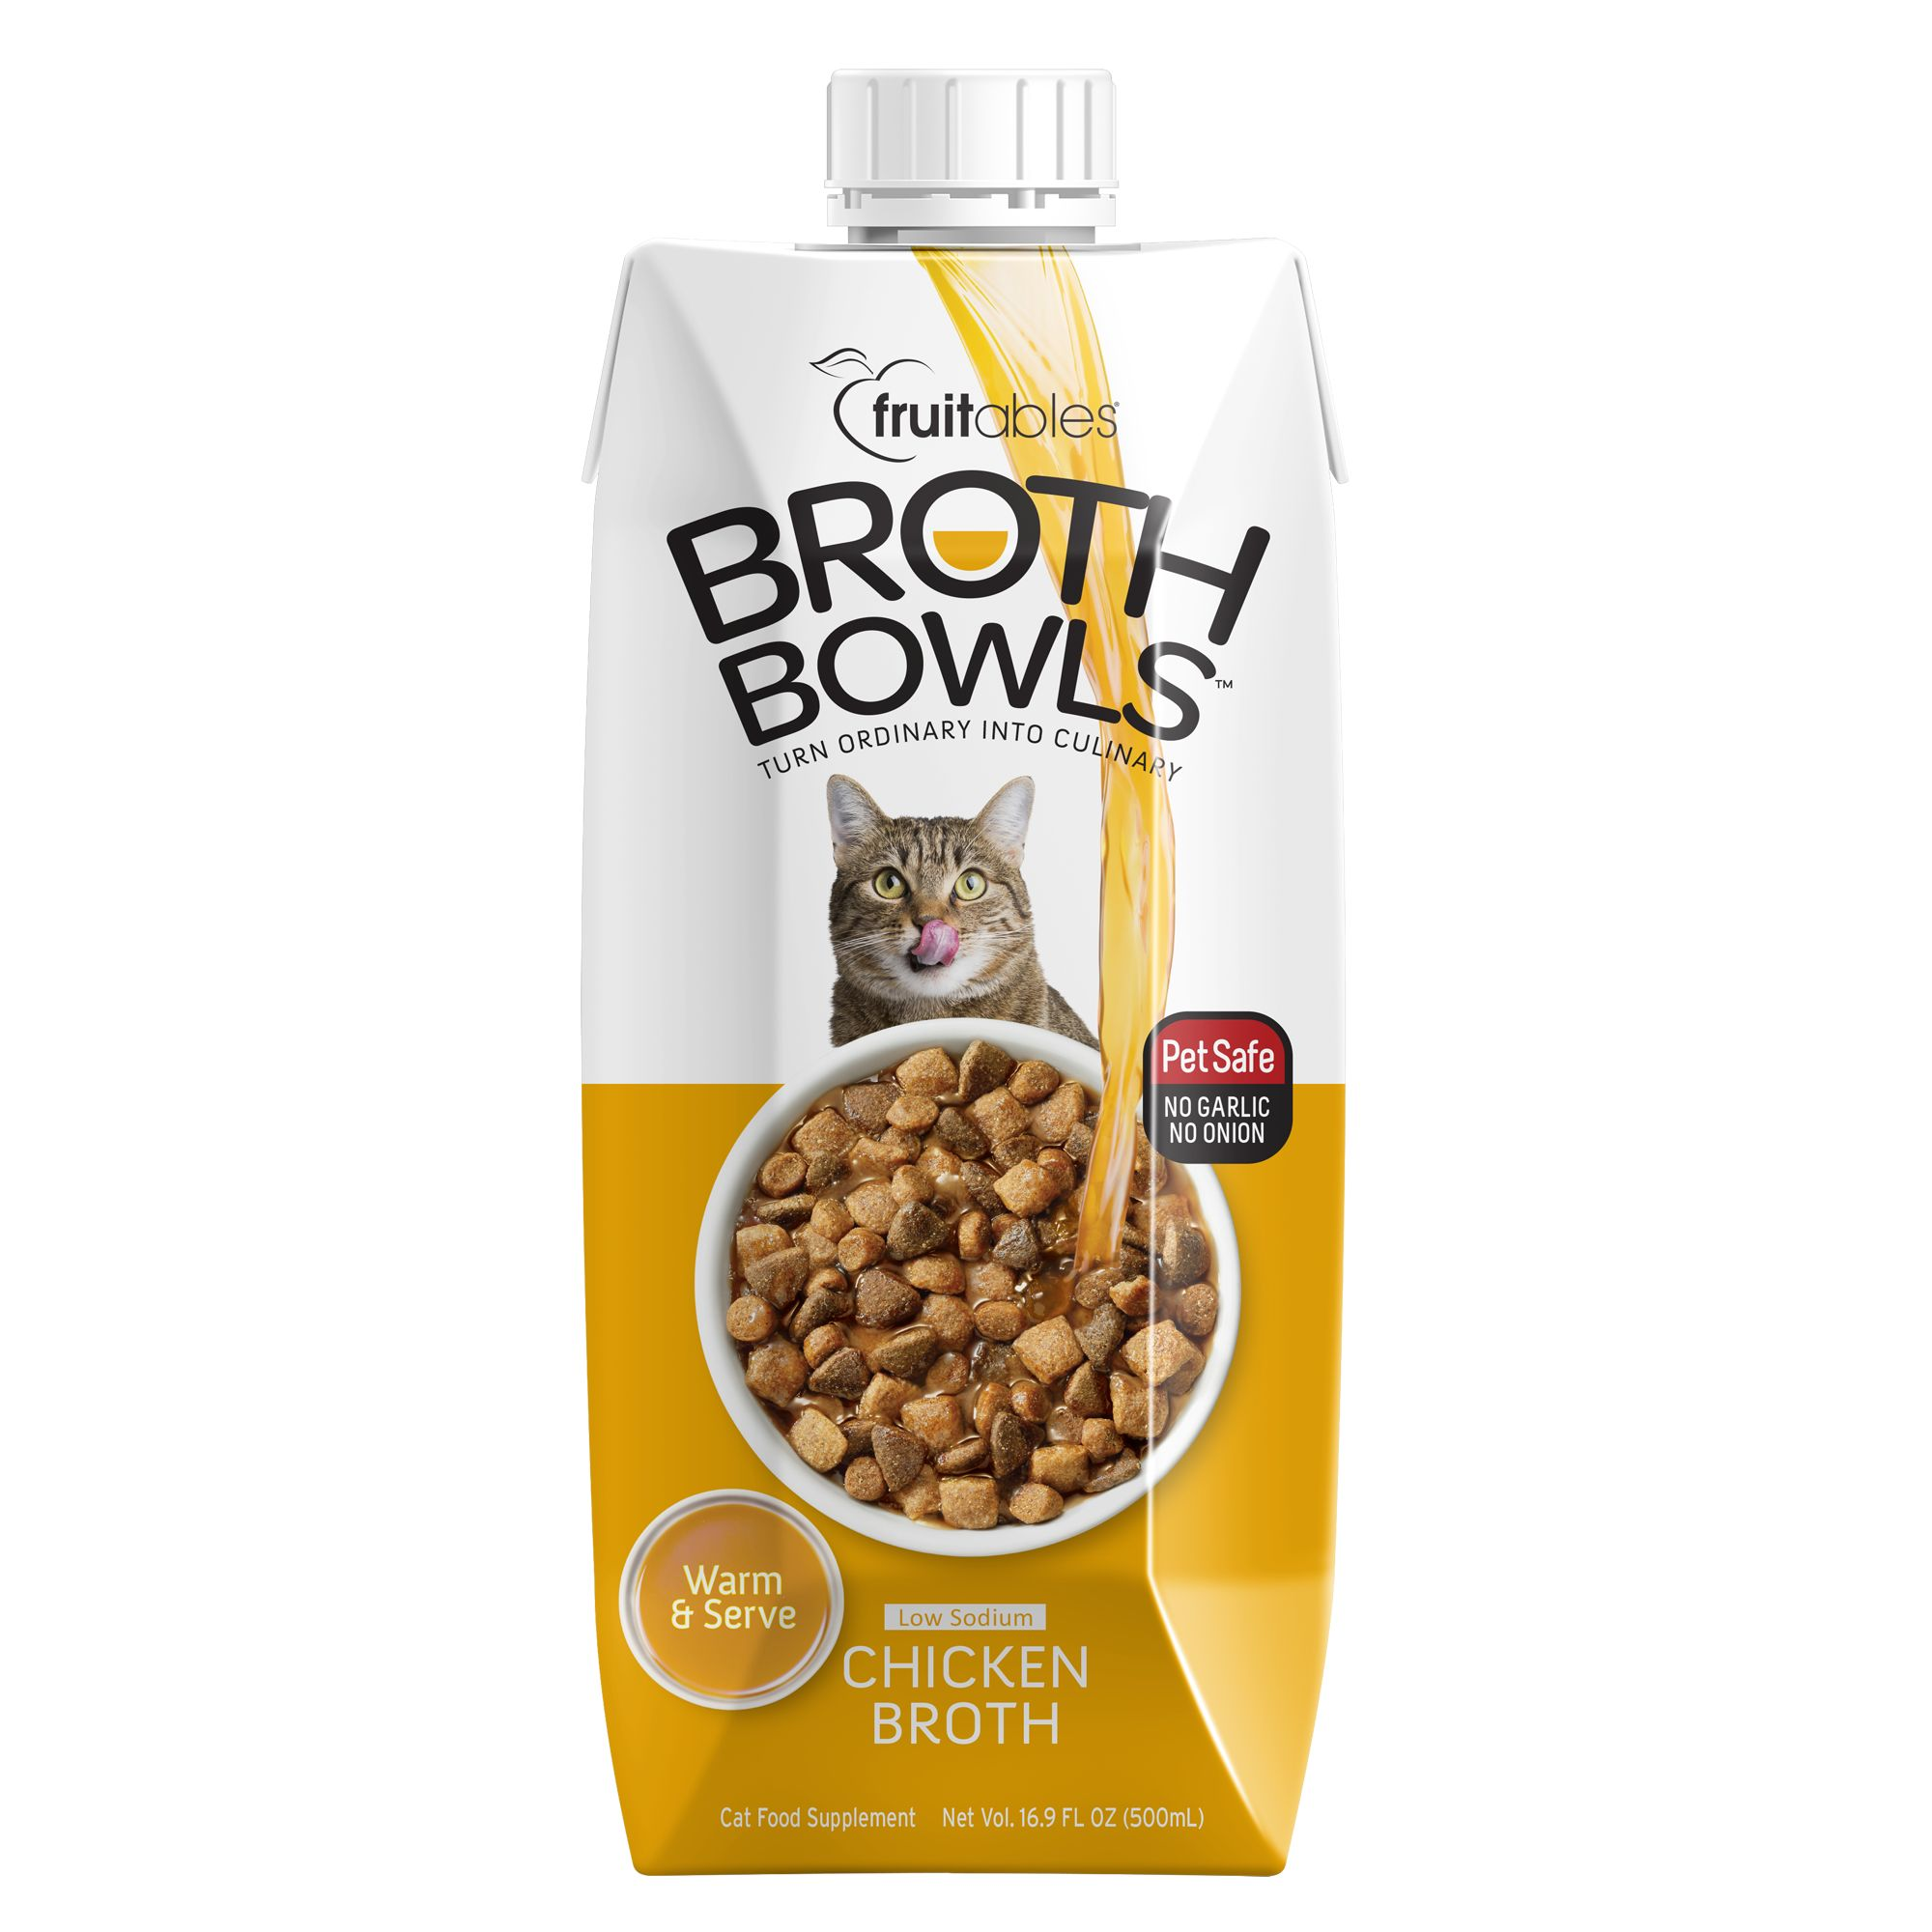 Fruitables Broth Bowls Cat Food Topper Chicken Size 16.9 Oz